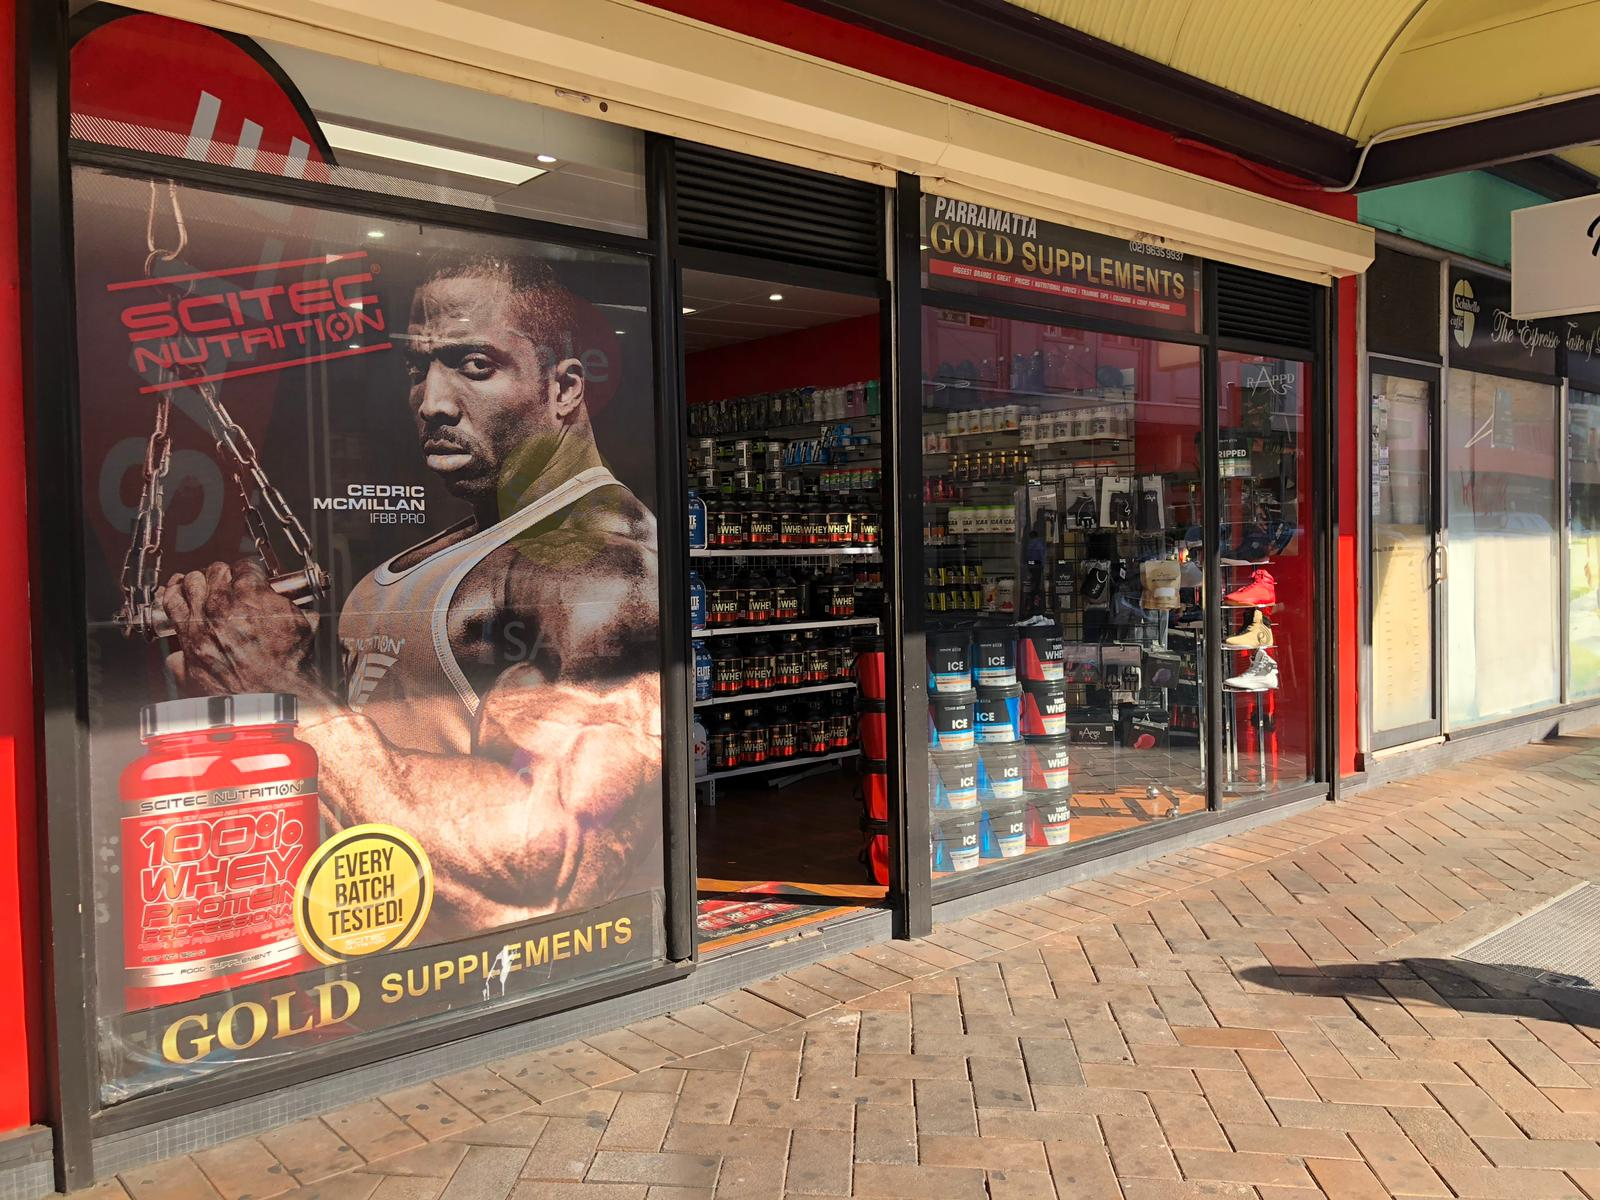 SUPPLEMENTS STORE IN PRRAMATTA